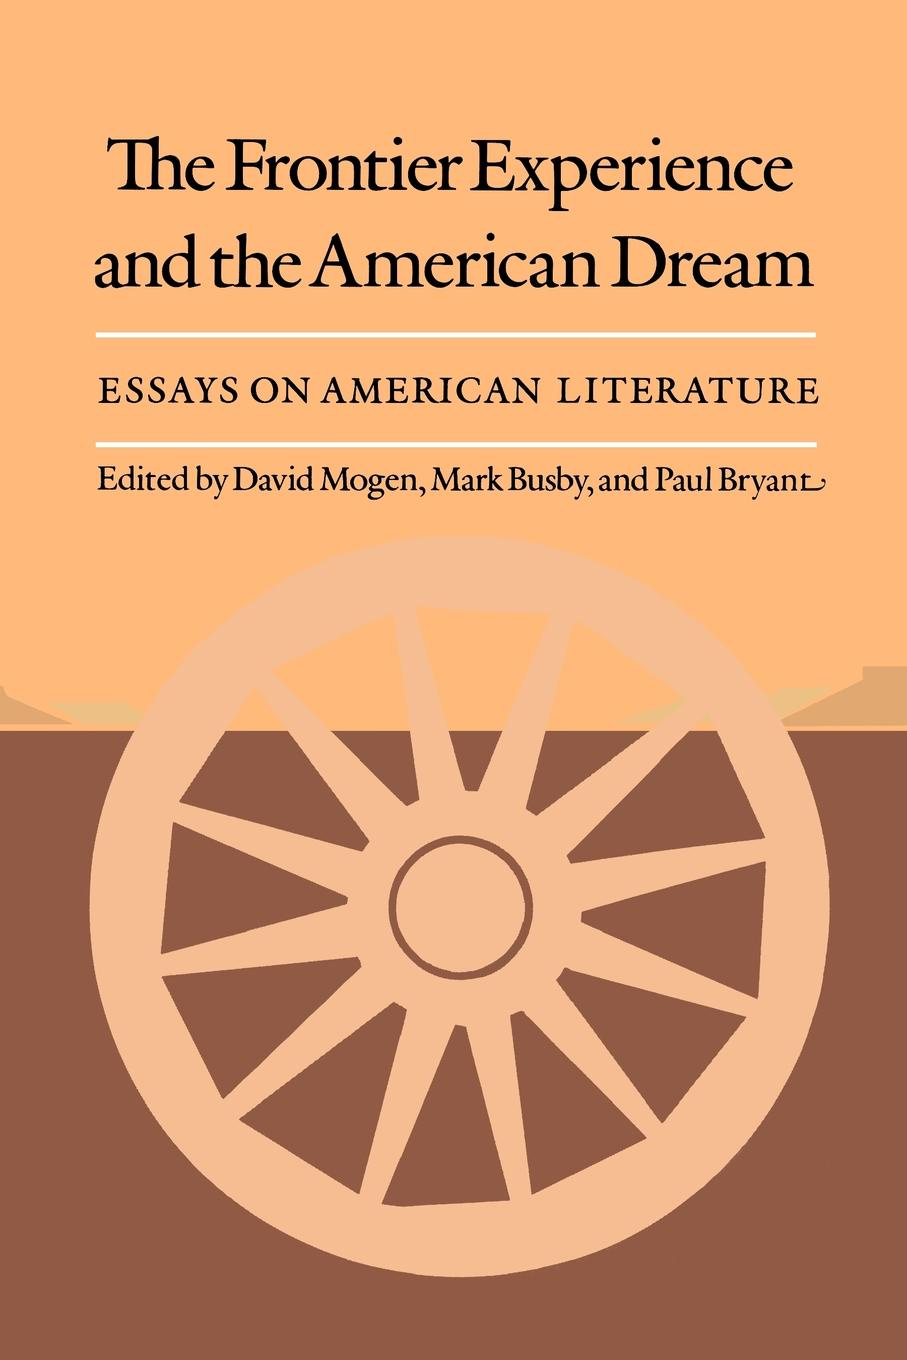 The Frontier Experience and the American Dream. Essays on Literature